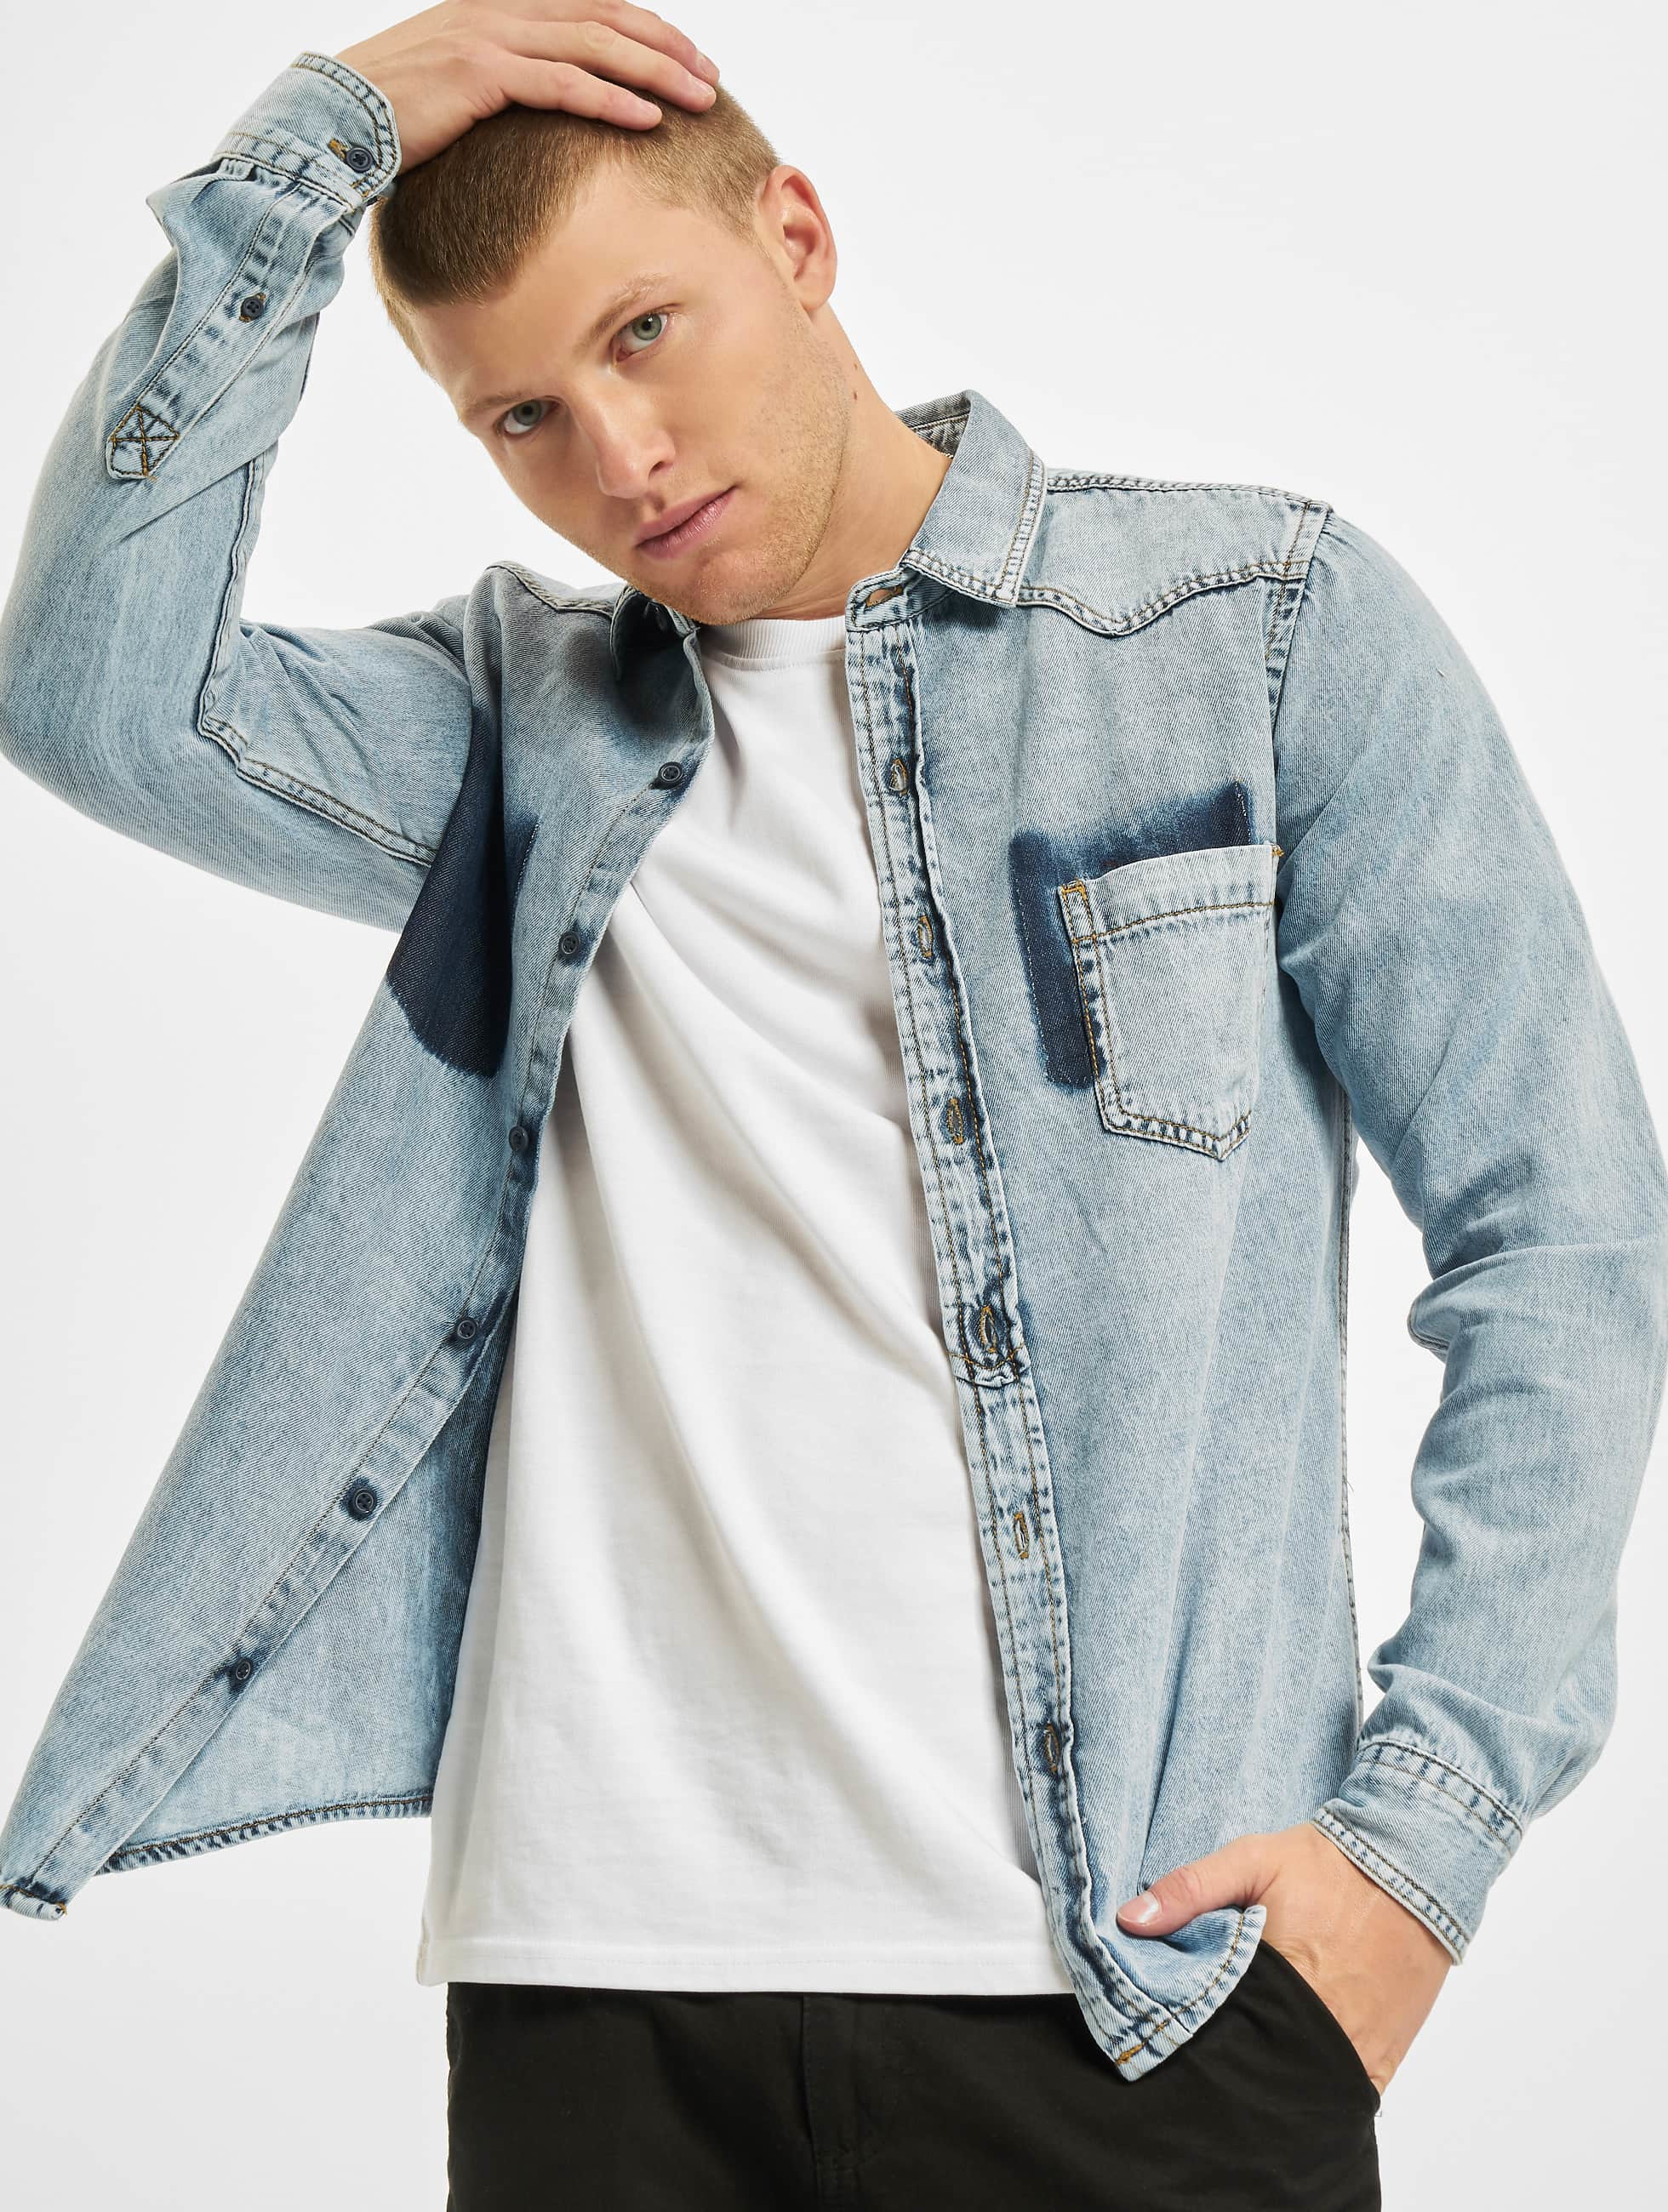 Urban Classics overhemd Denim Pocket blauw